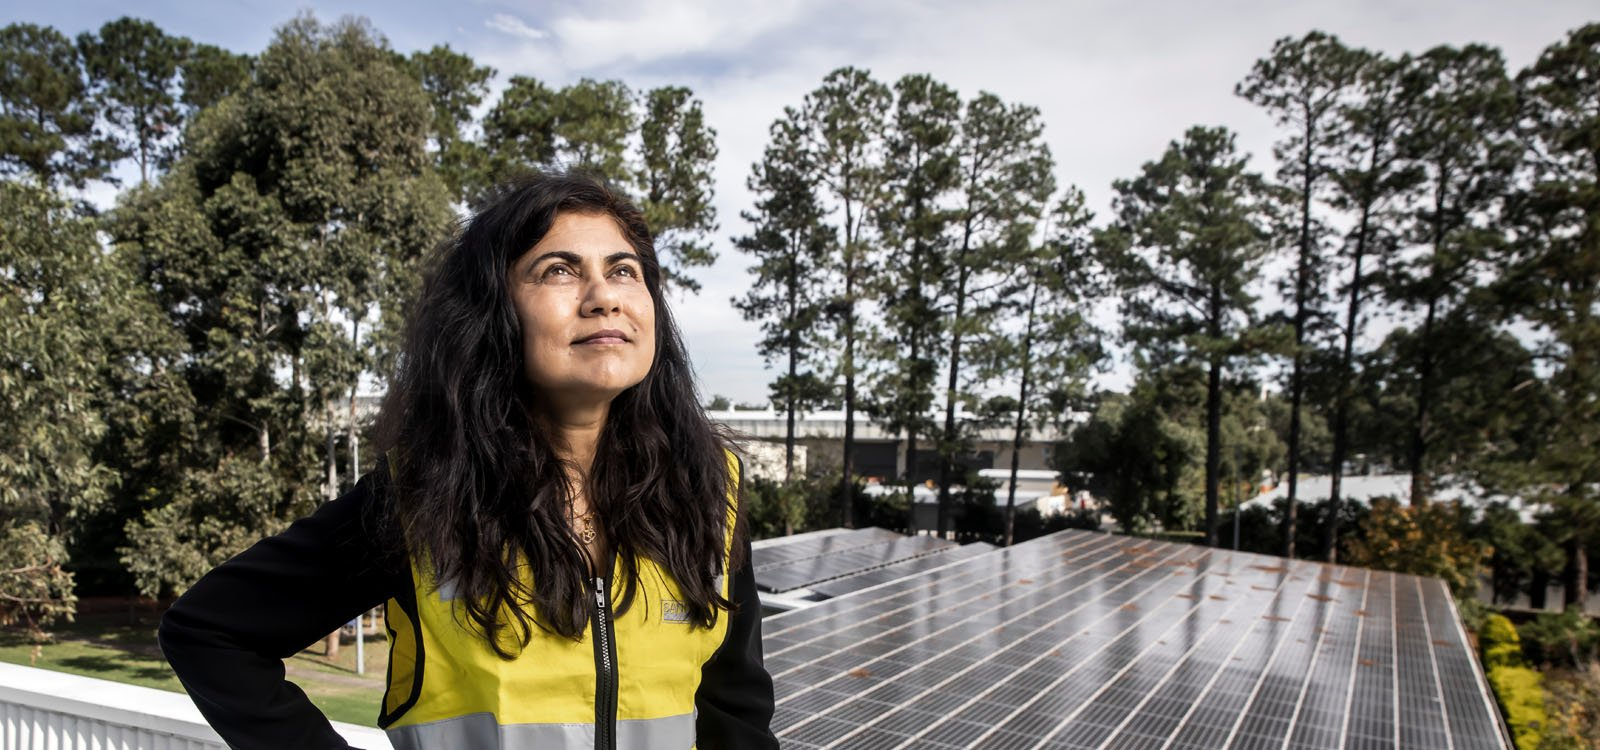 <p>Veena Sahajwalla believes sustainability is the key to improving the global economy for all.</p>